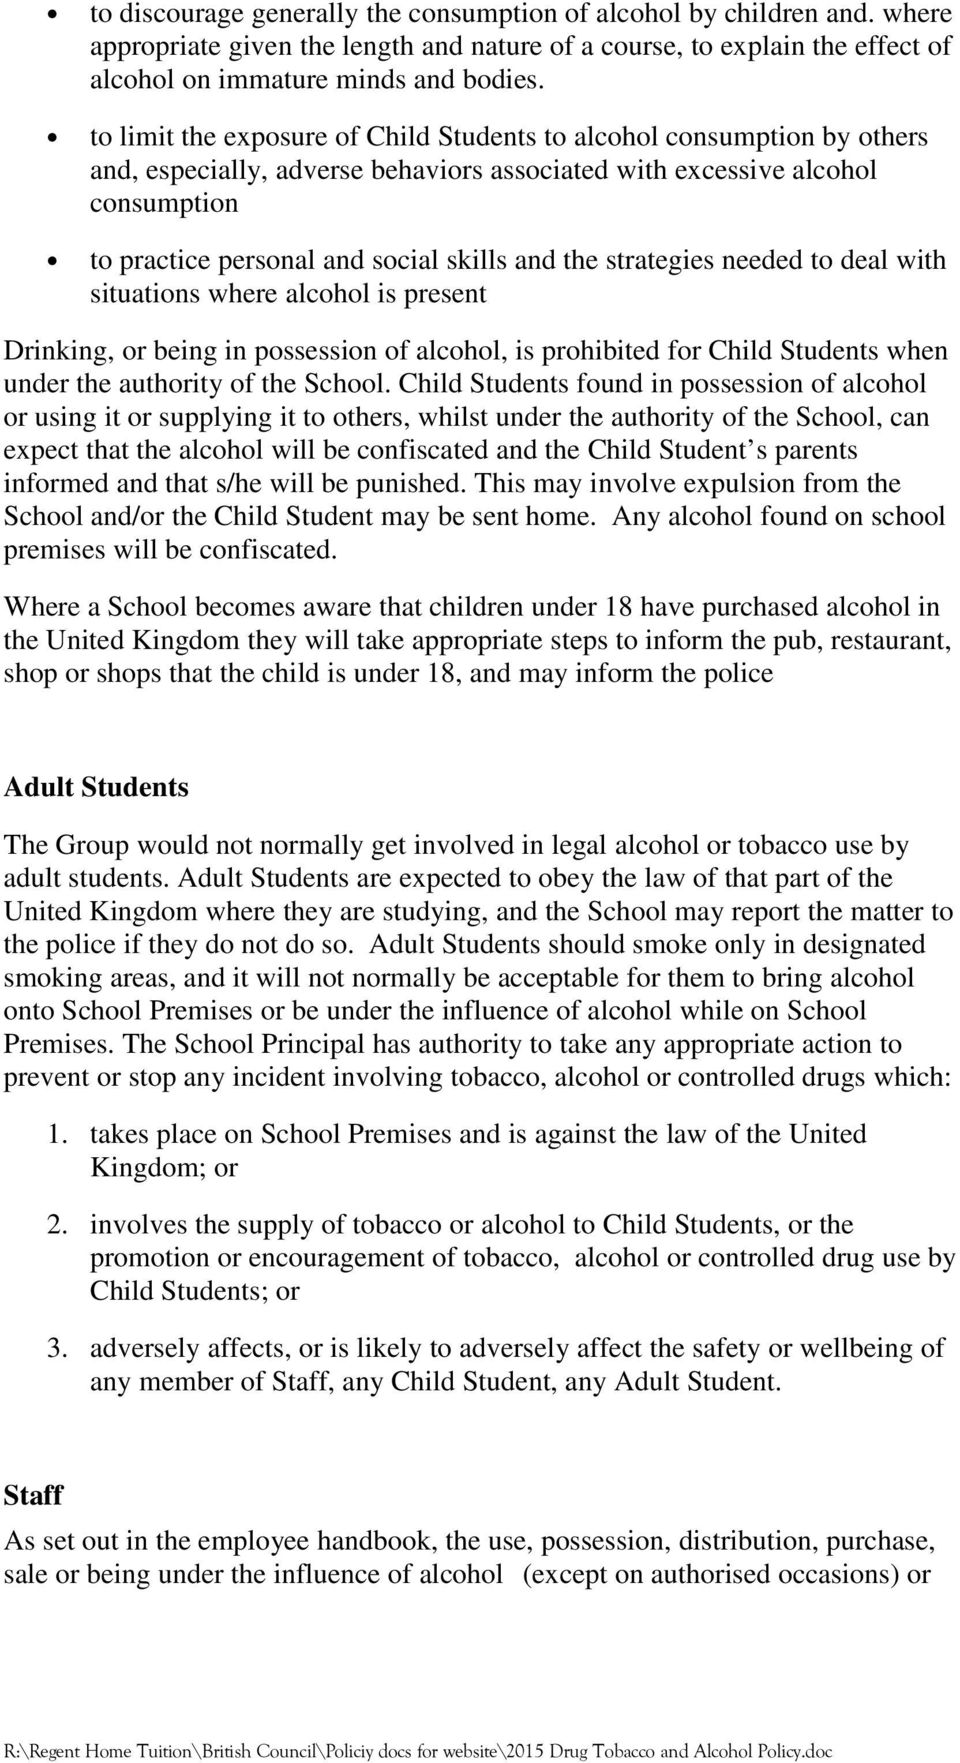 the strategies needed to deal with situations where alcohol is present Drinking, or being in possession of alcohol, is prohibited for Child Students when under the authority of the School.